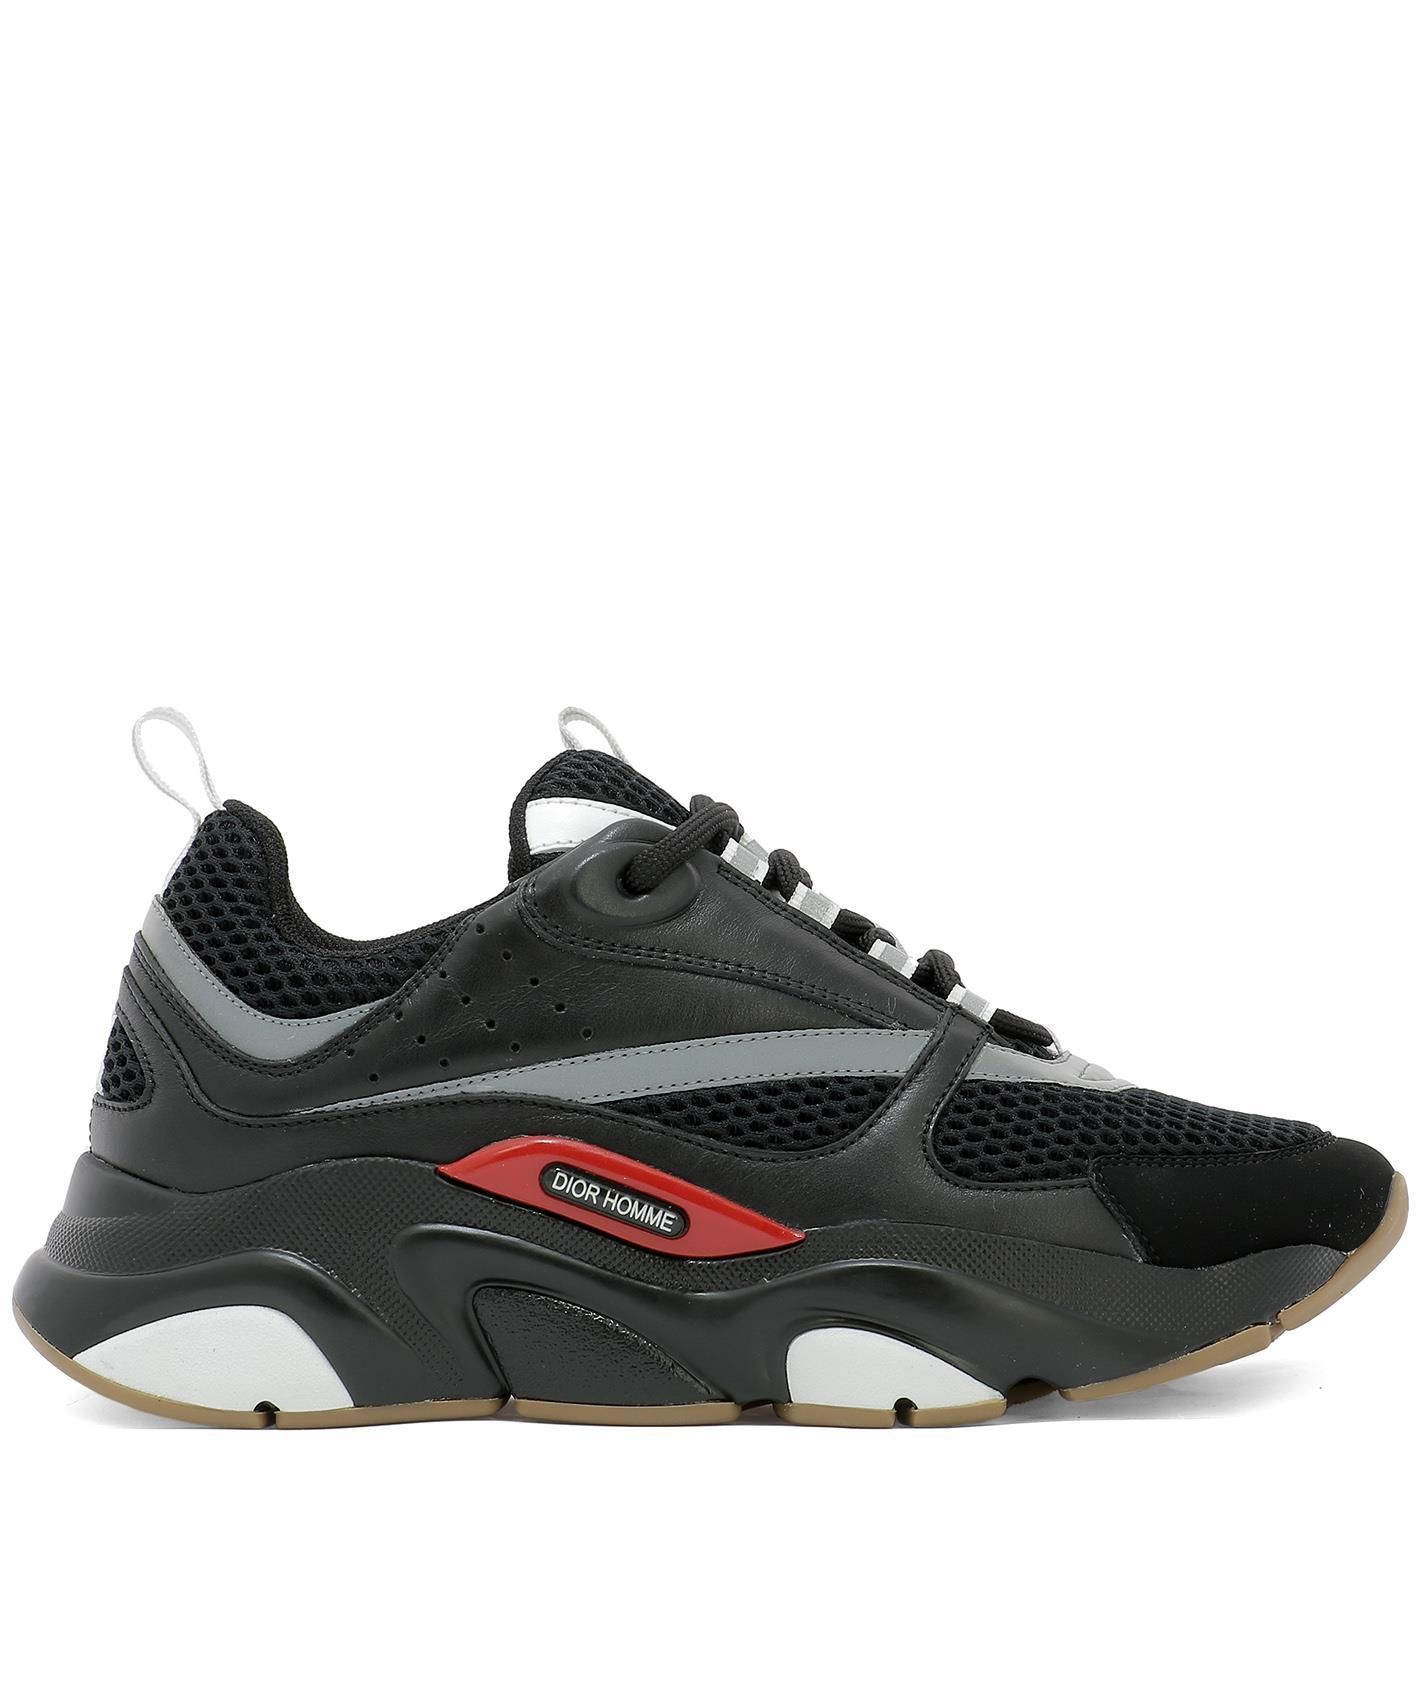 DIOR HOMME DIOR HOMME B22 SNEAKERS.  diorhomme  shoes  d92422493